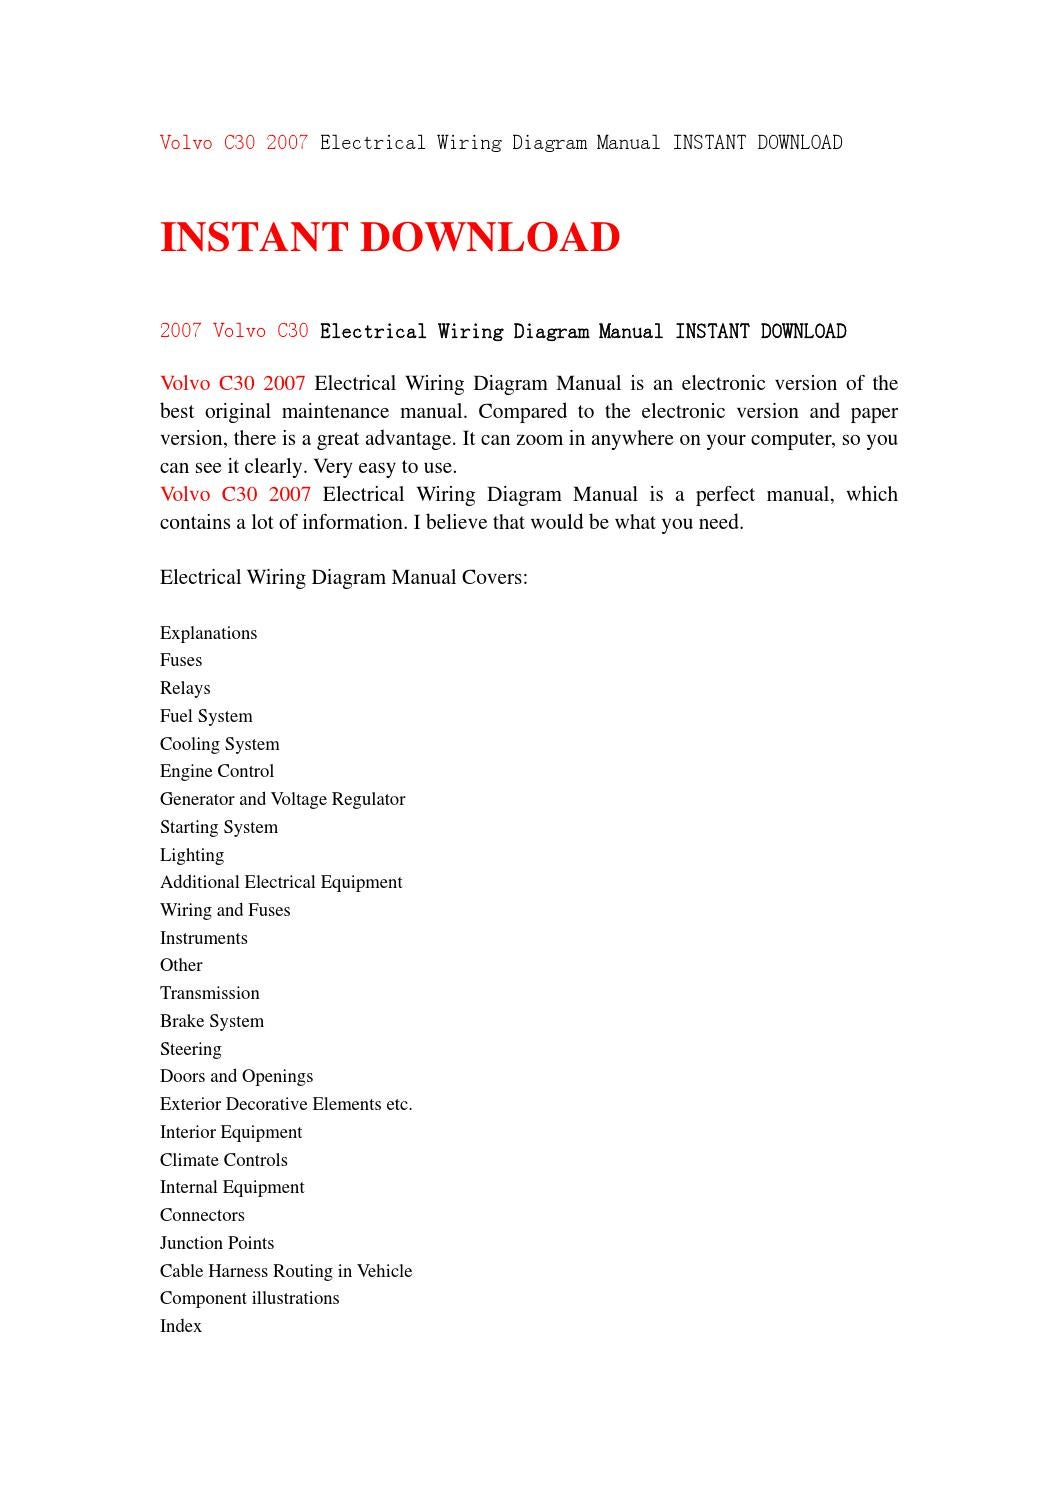 Volvo C30 2007 Electrical Wiring Diagram Manual Instant Download By Servicemanuald89s